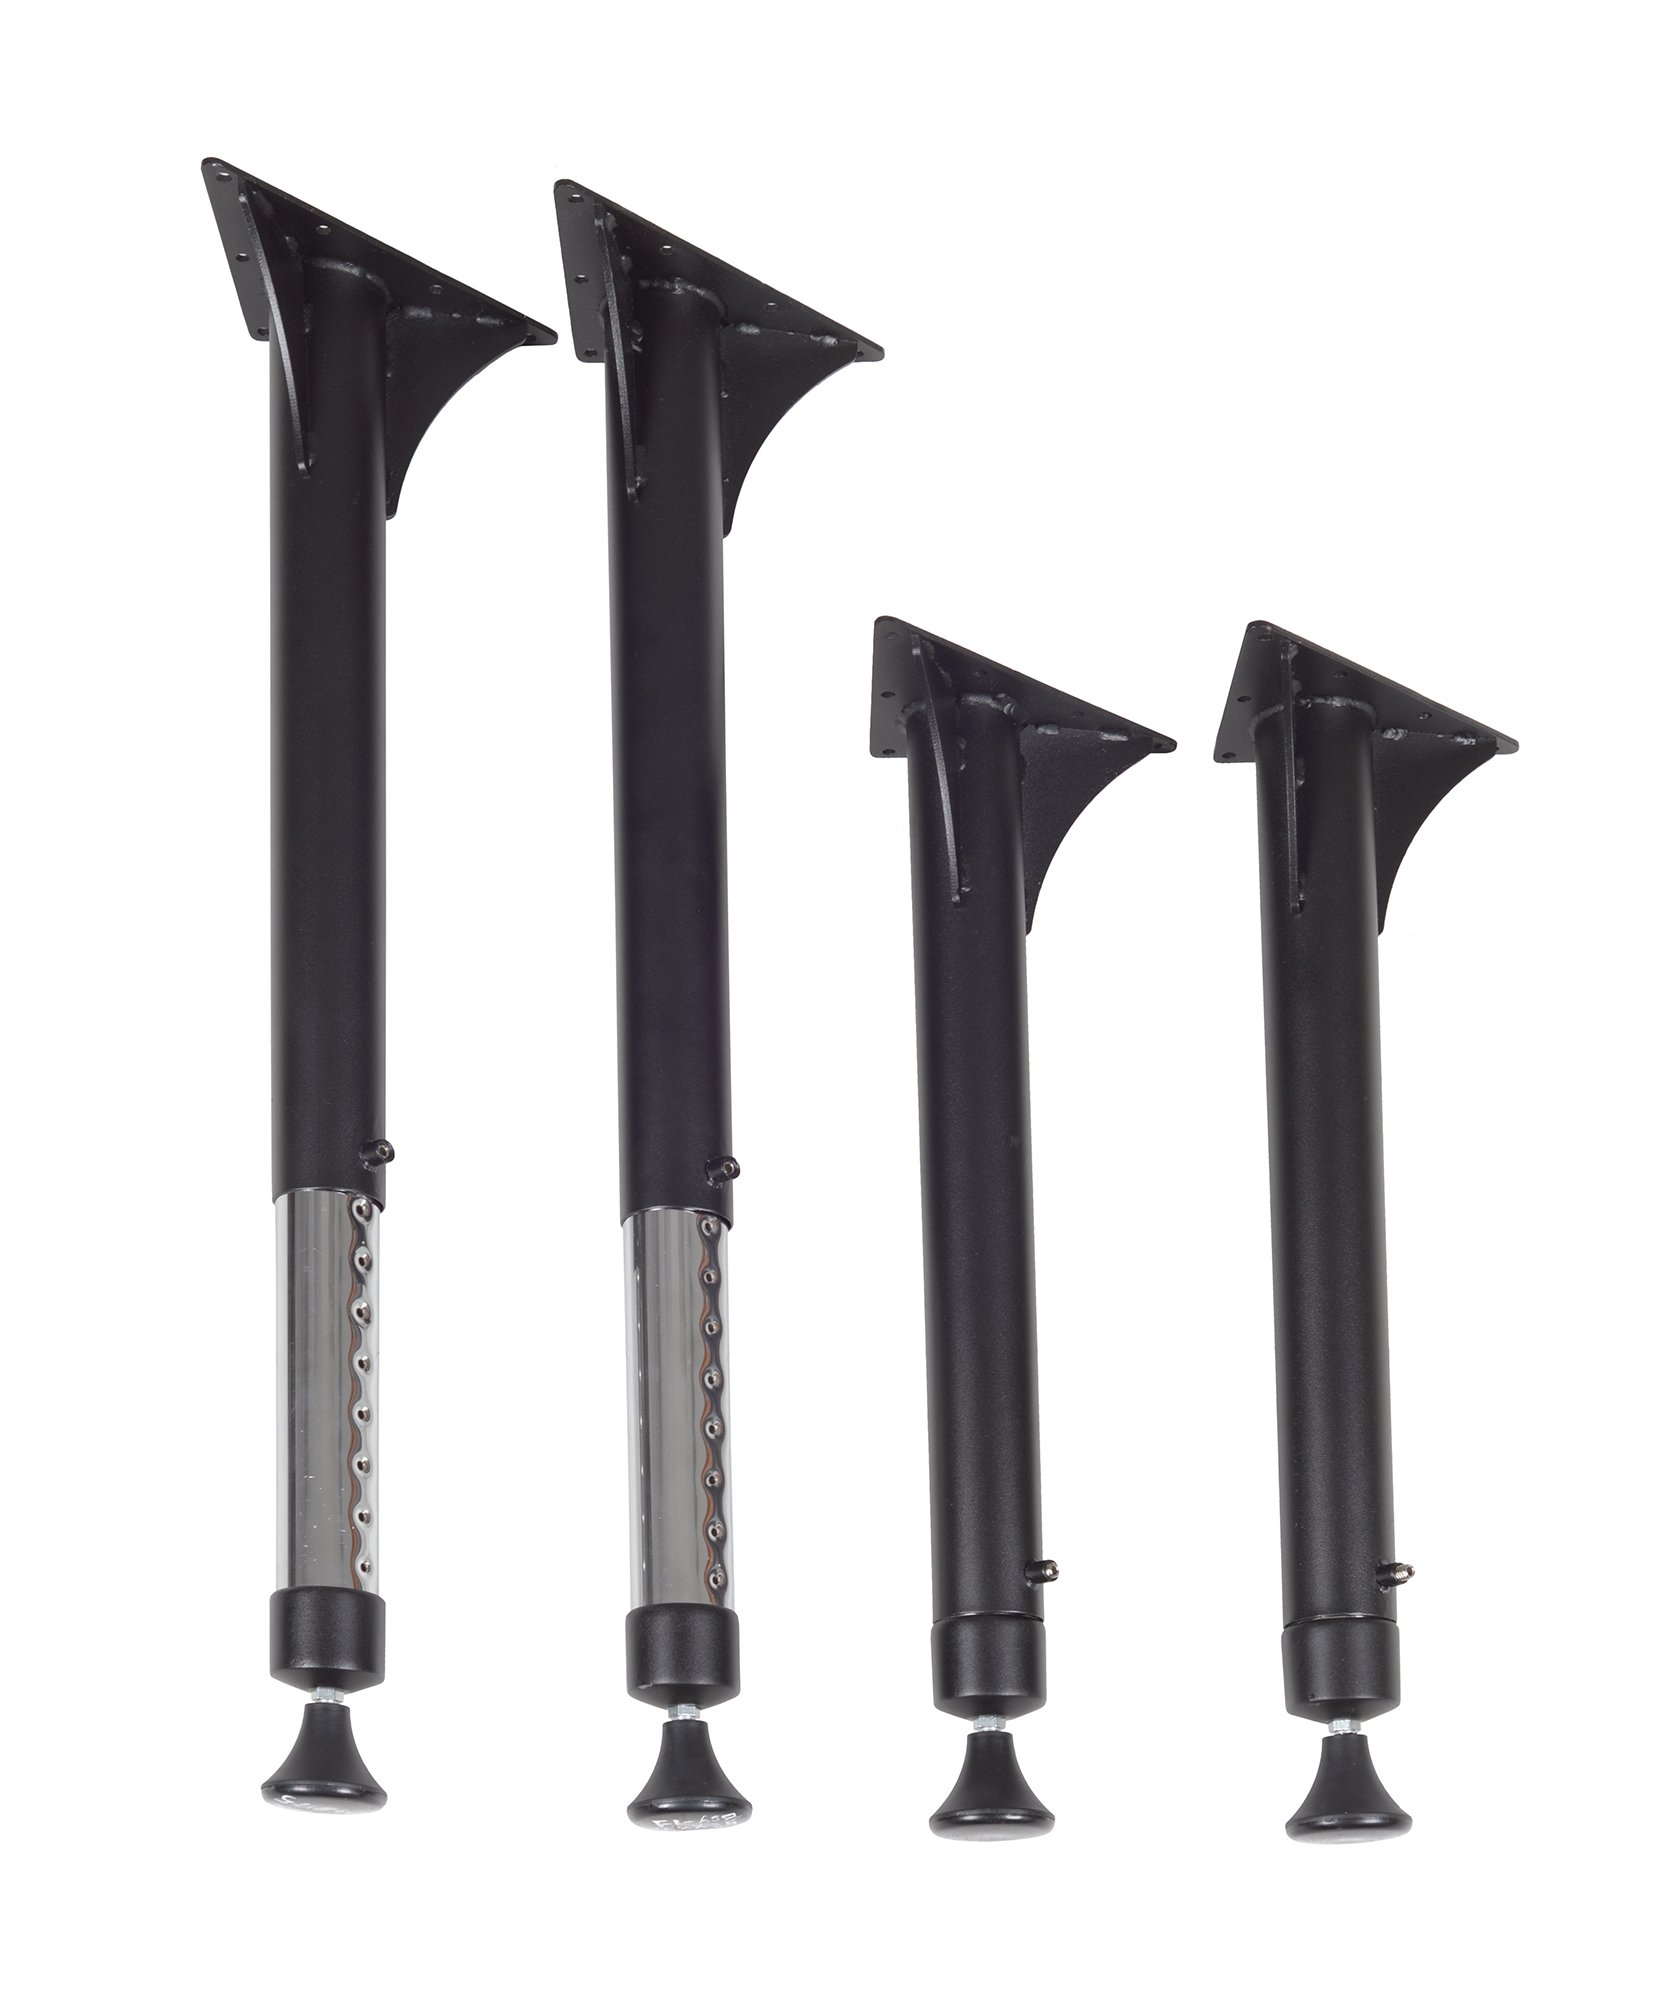 Regency Kee Adjustable Leg, black & Chrome (Set of 4) by Regency (Image #1)